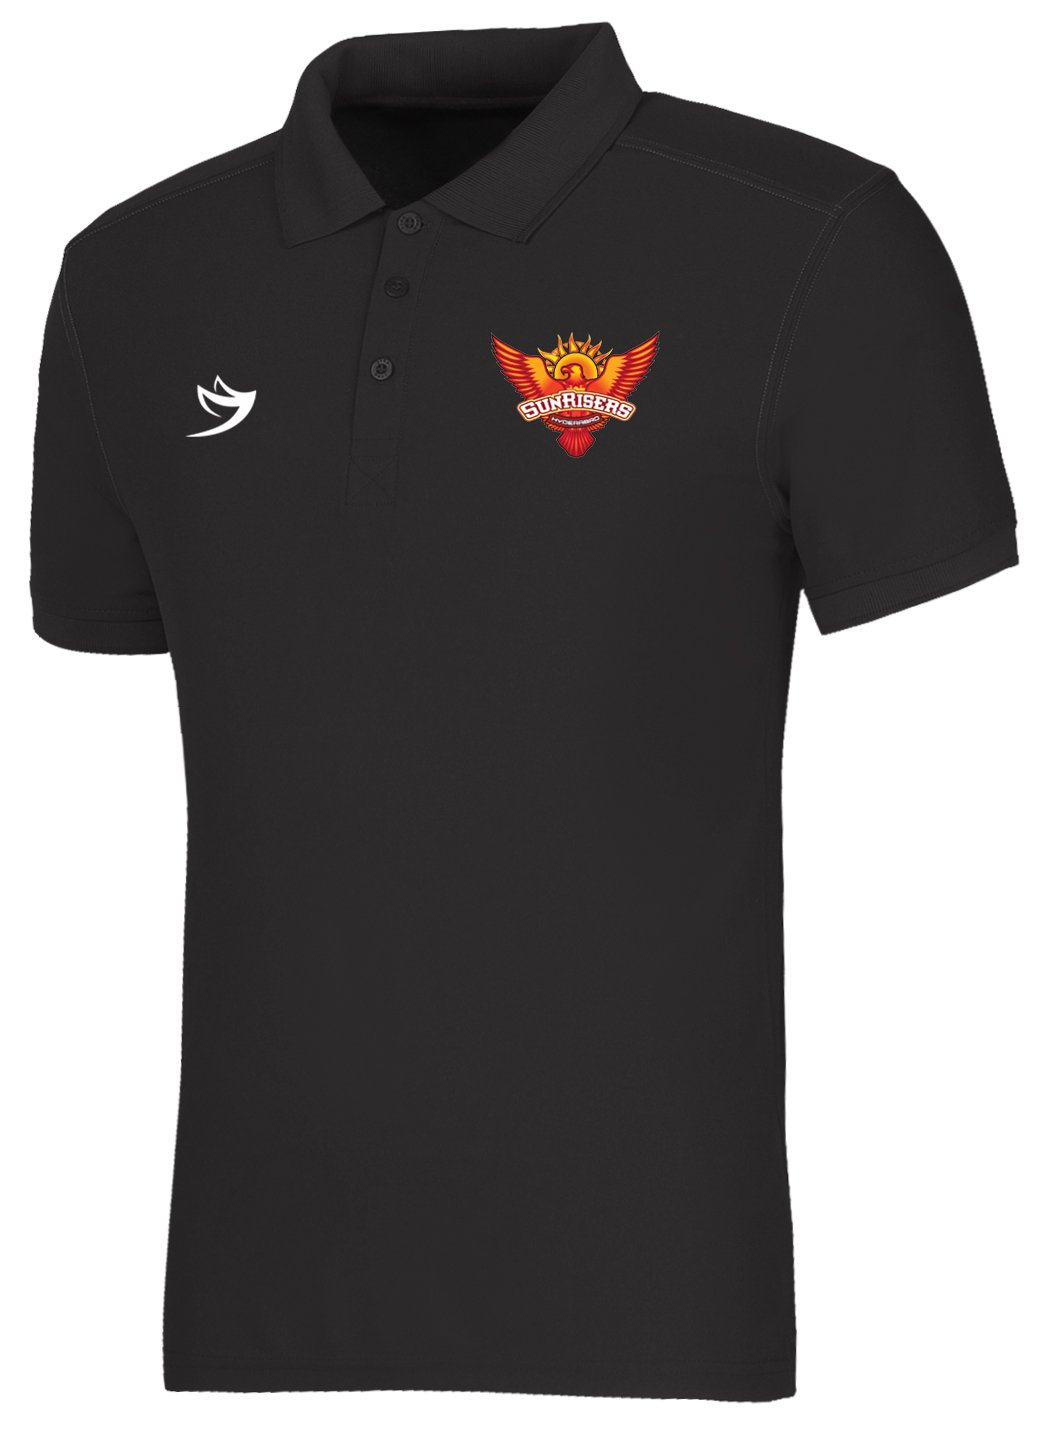 74a4efb56 Sunrisers Hyderabad T Shirt Online Purchase - BCD Tofu House